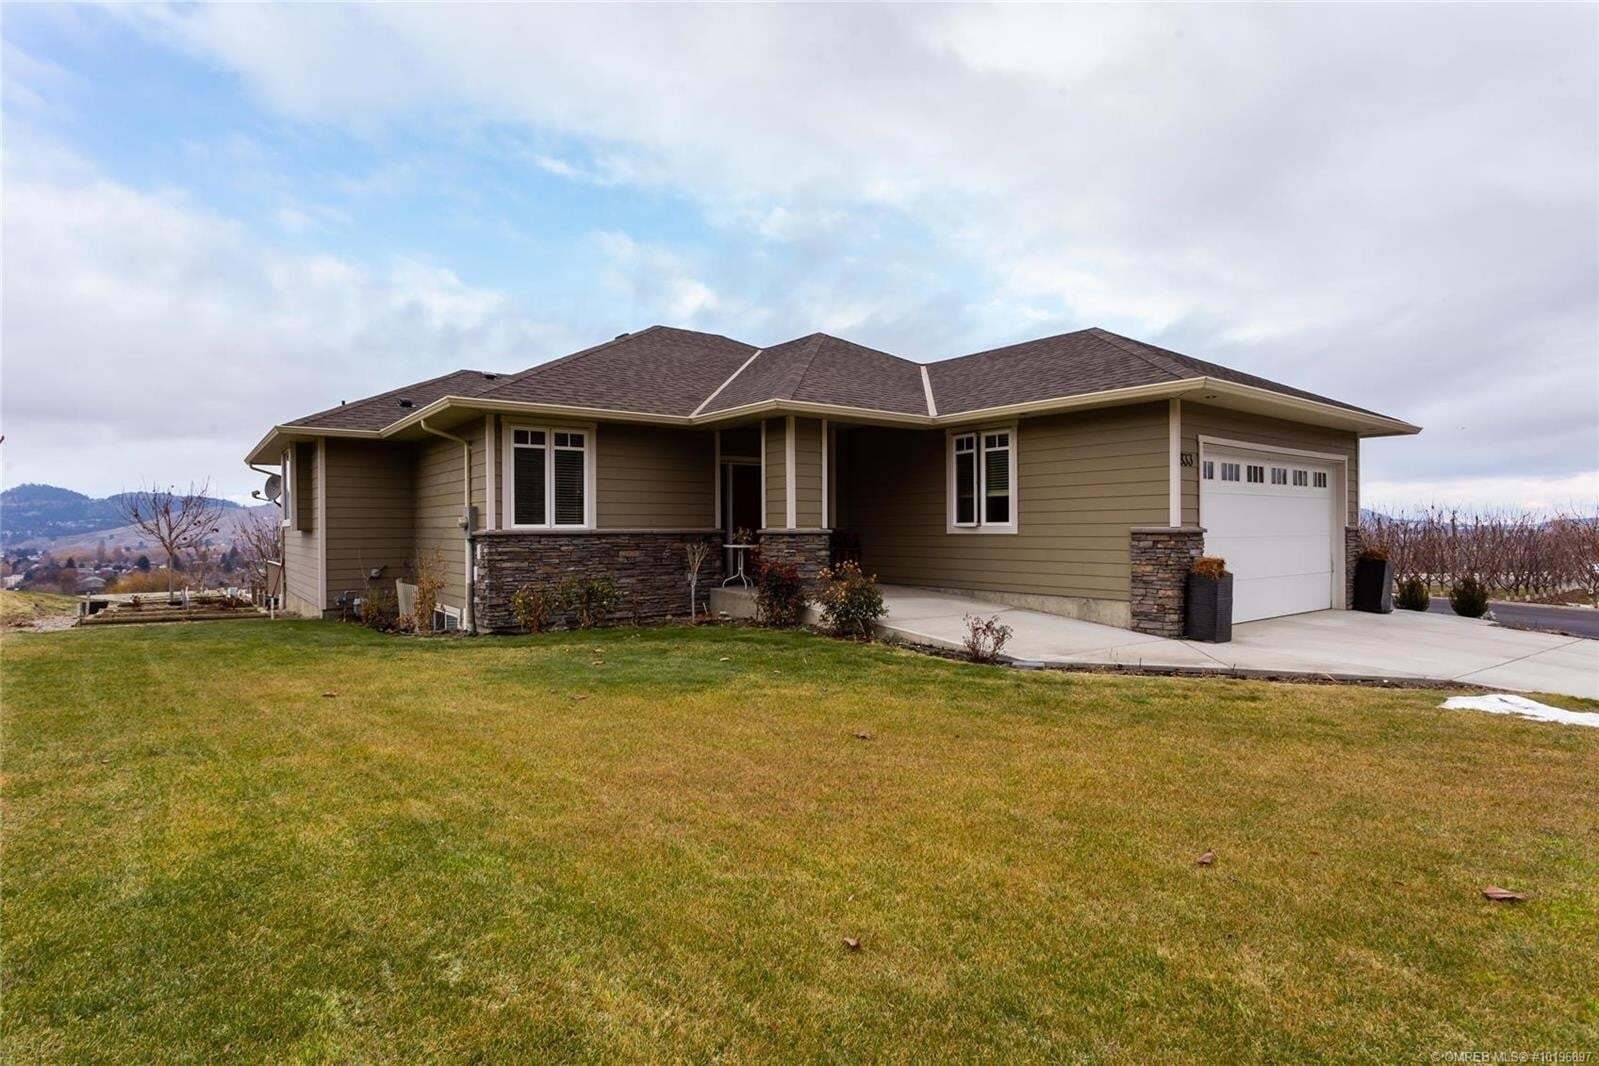 House for sale at 833 Mccurdy Rd East Kelowna British Columbia - MLS: 10196897